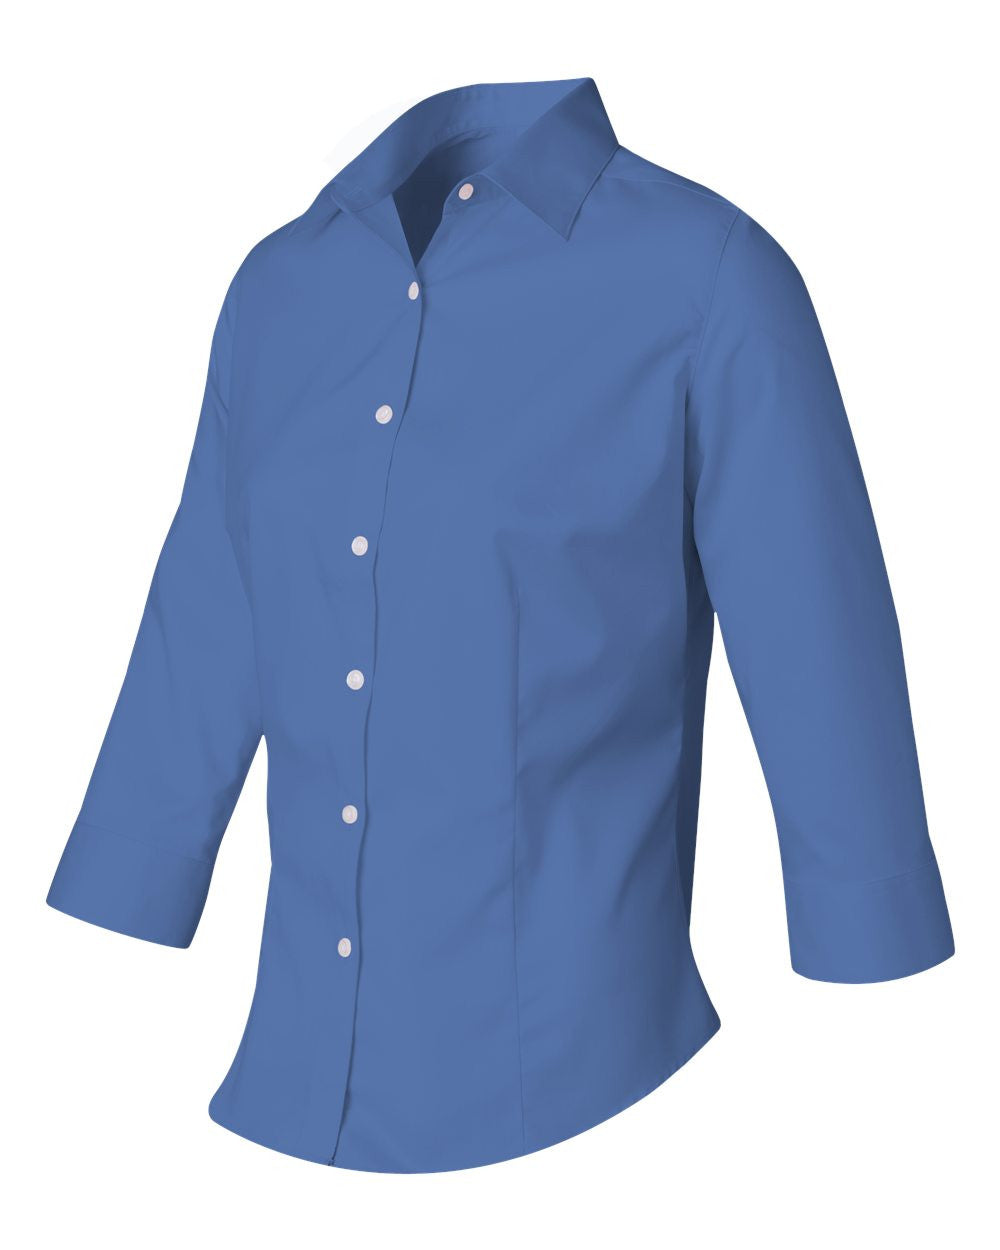 3/4 Sleeve Button down dress shirts by Van Heusen - Discountedrack.com